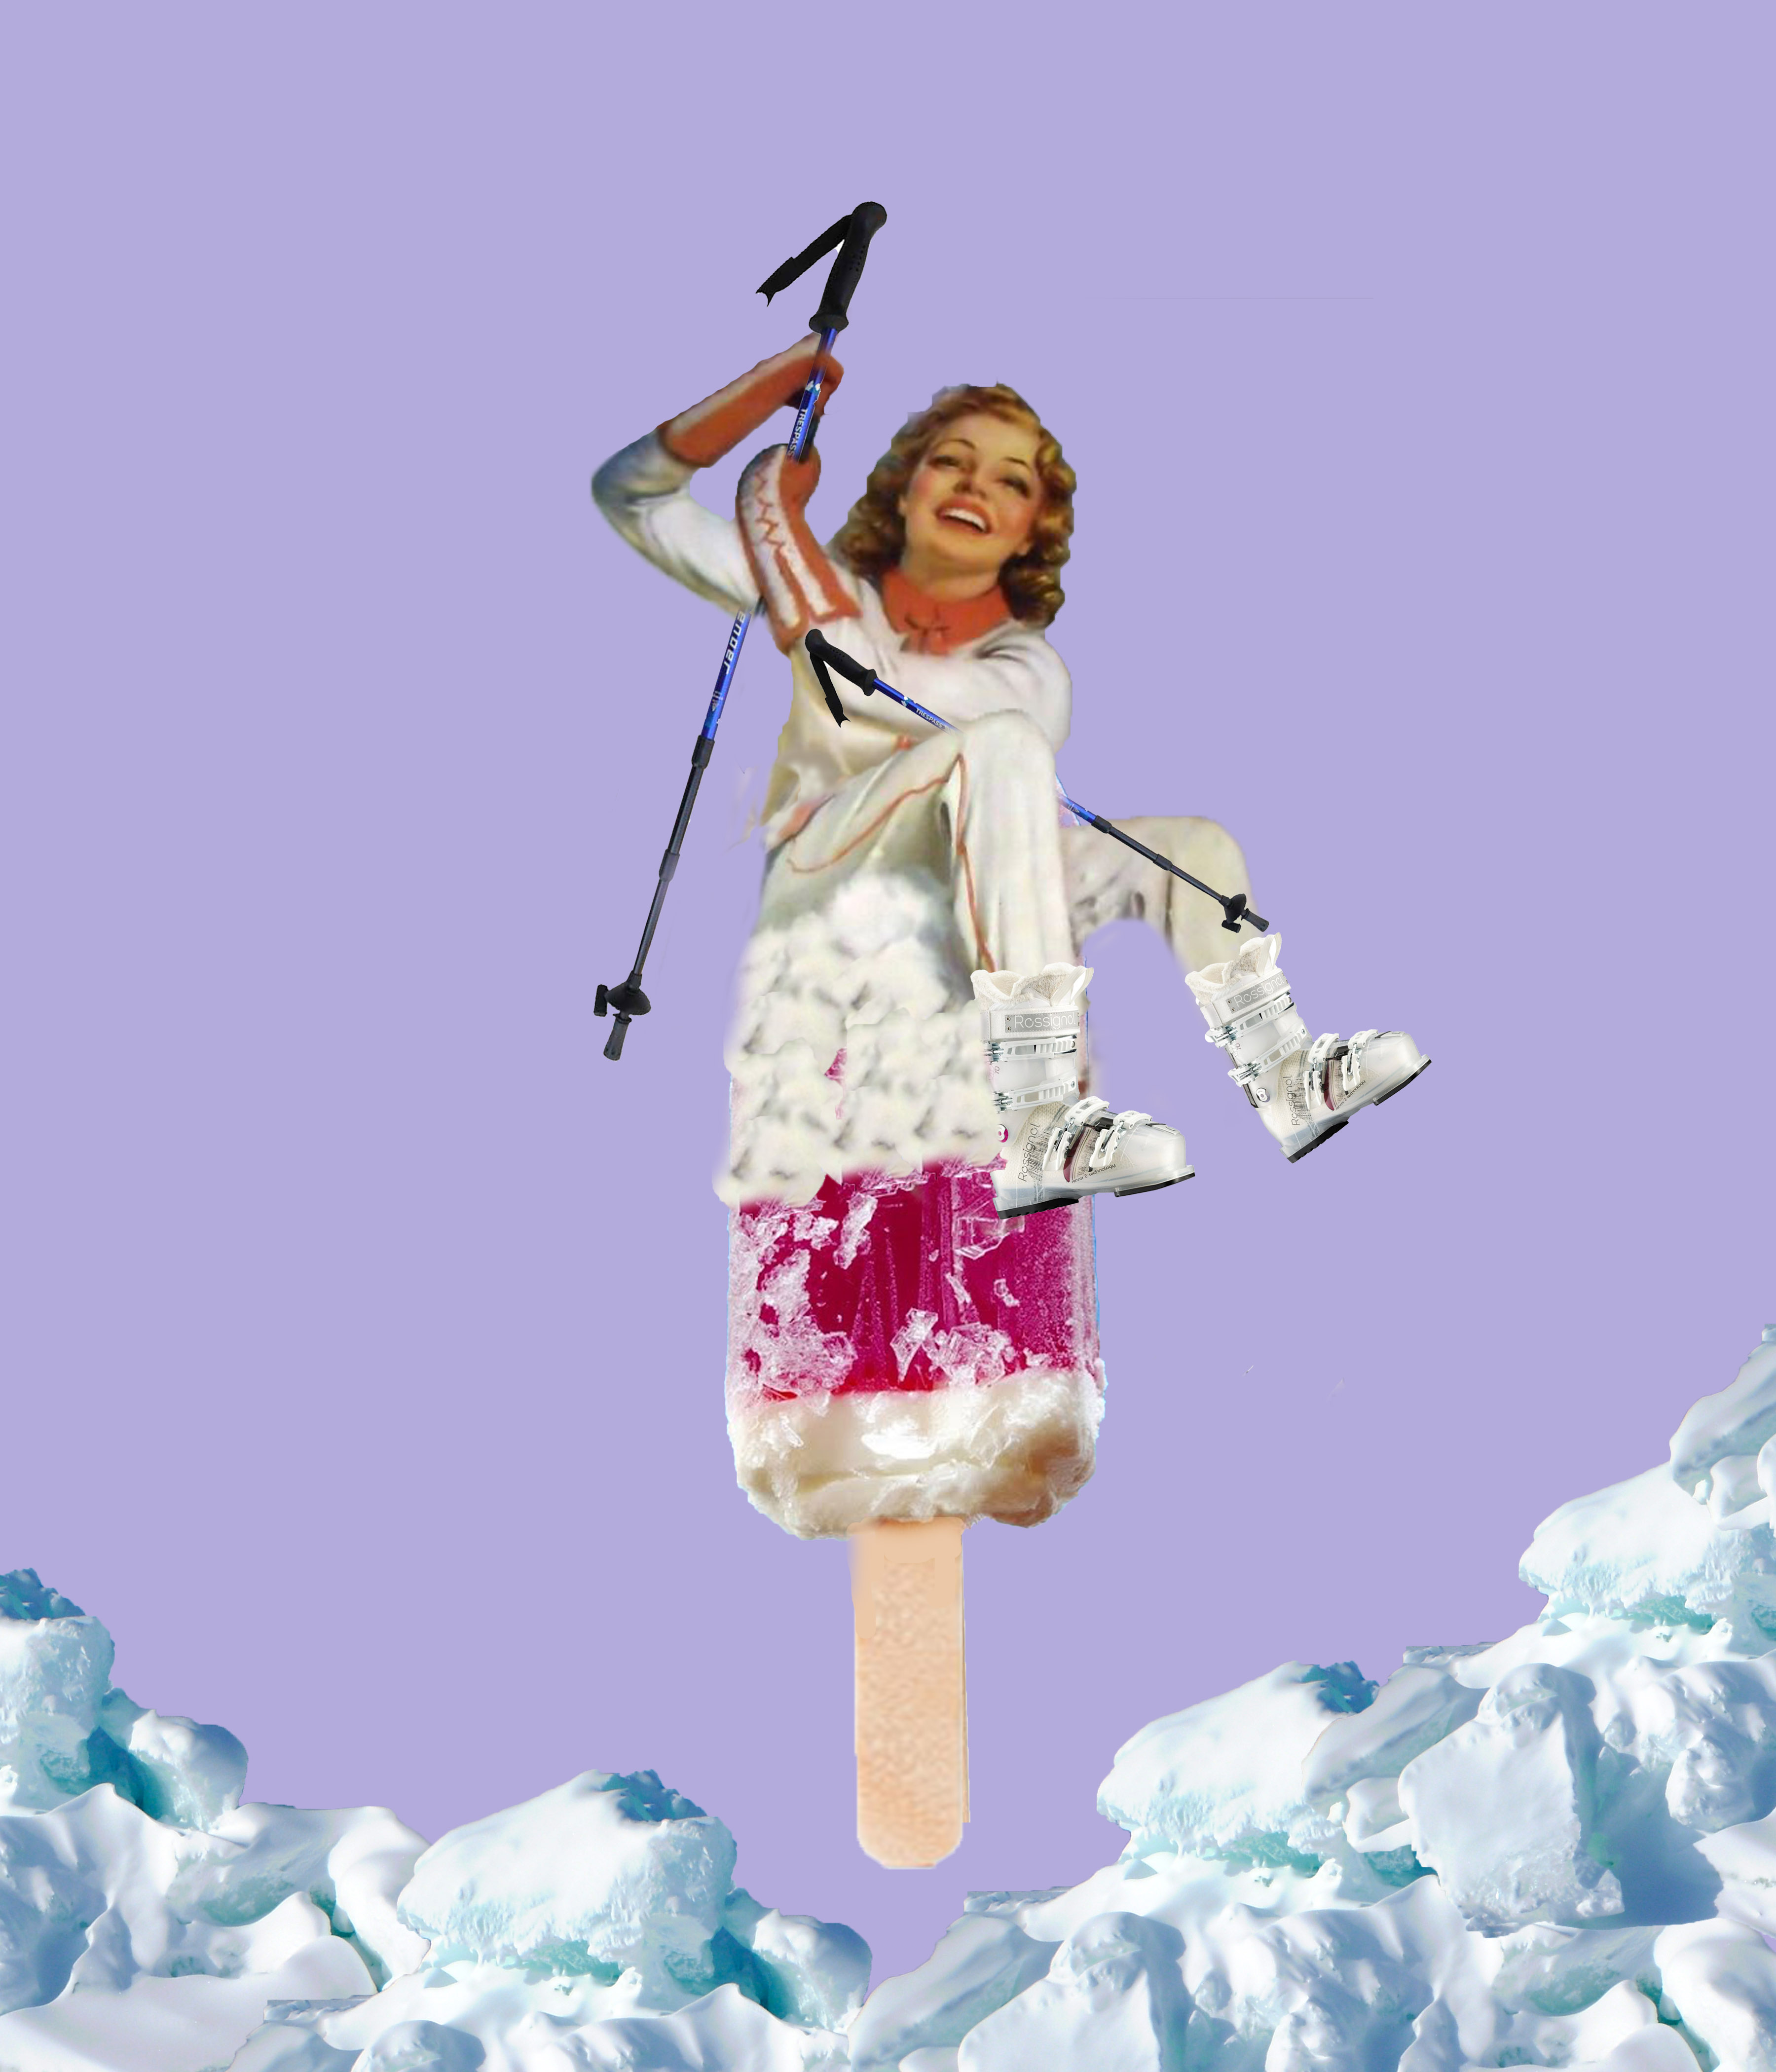 popsicle skiing 2